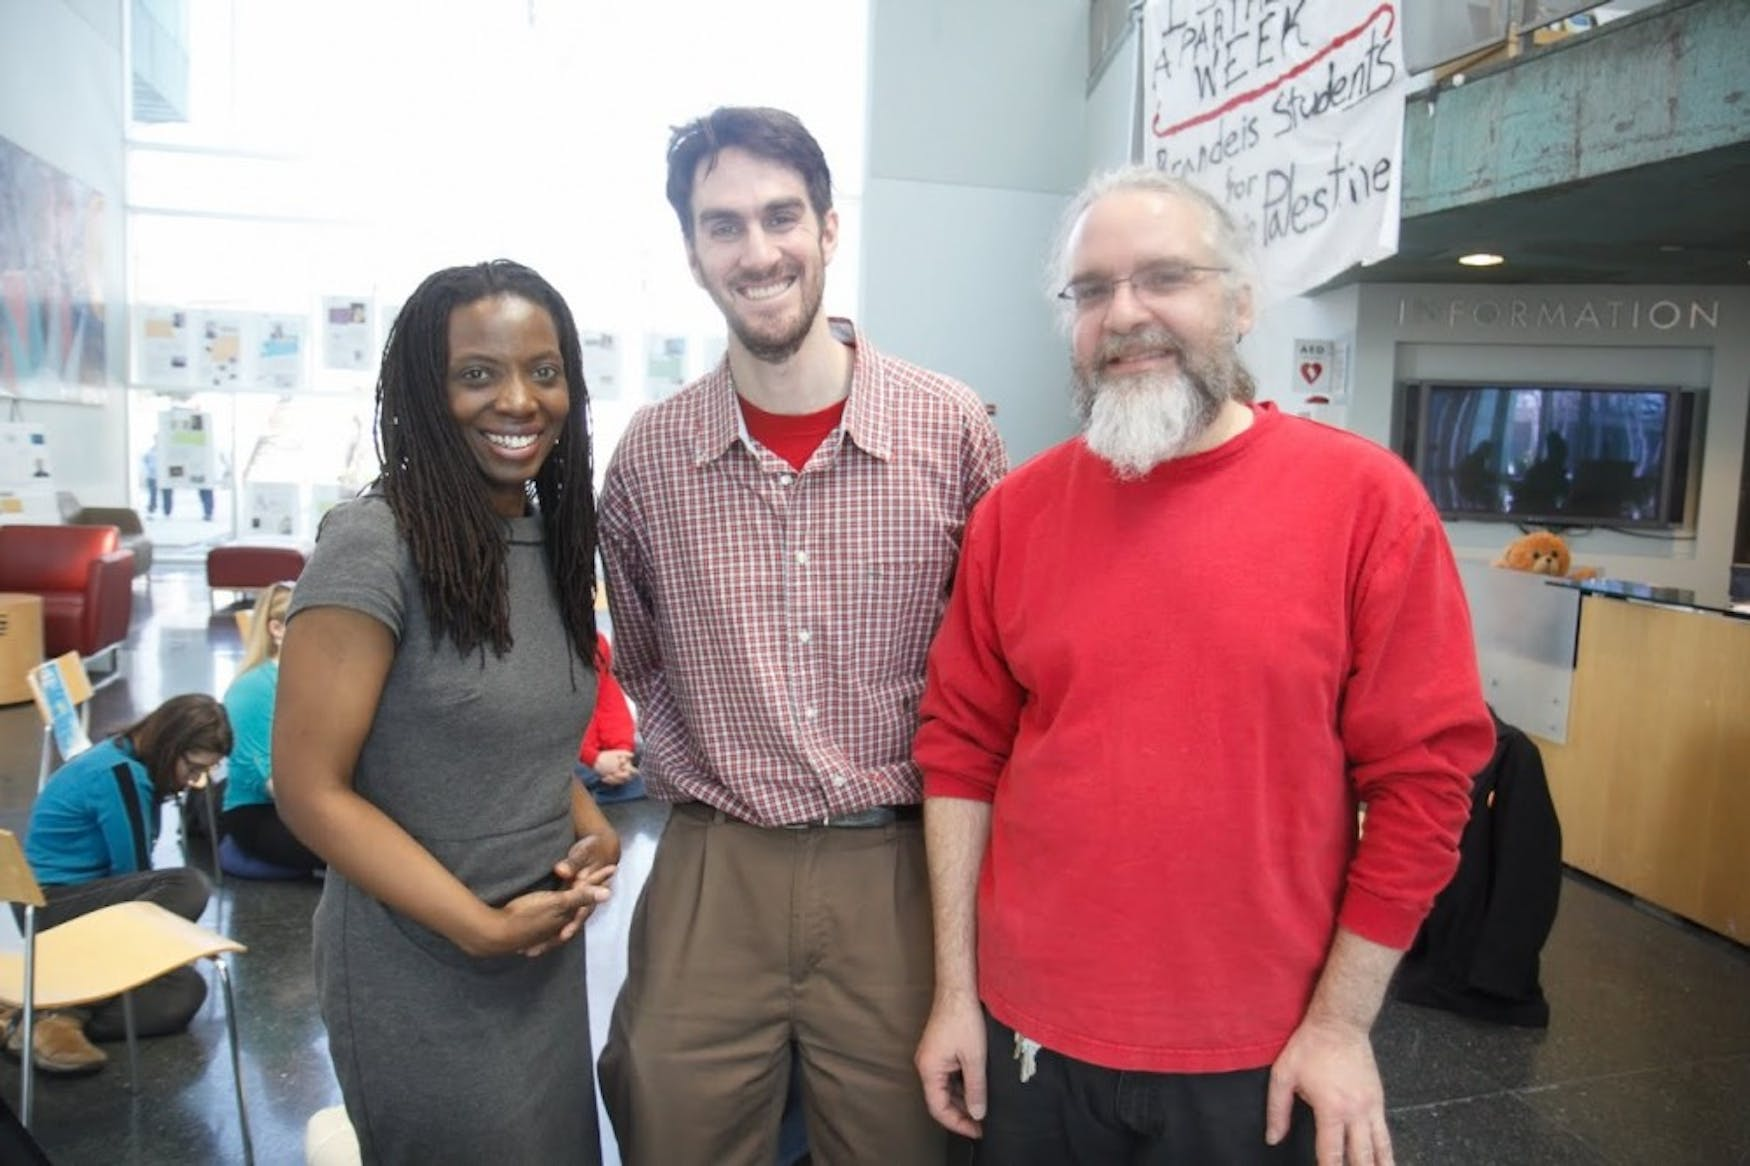 HELPING HANDS: [left to right] PCC counselor Jennifer Brown, Protestant Interfaith Chaplain Matthew Carriker and Technology Services staff member John Saylor are all working together to plan the retreat.